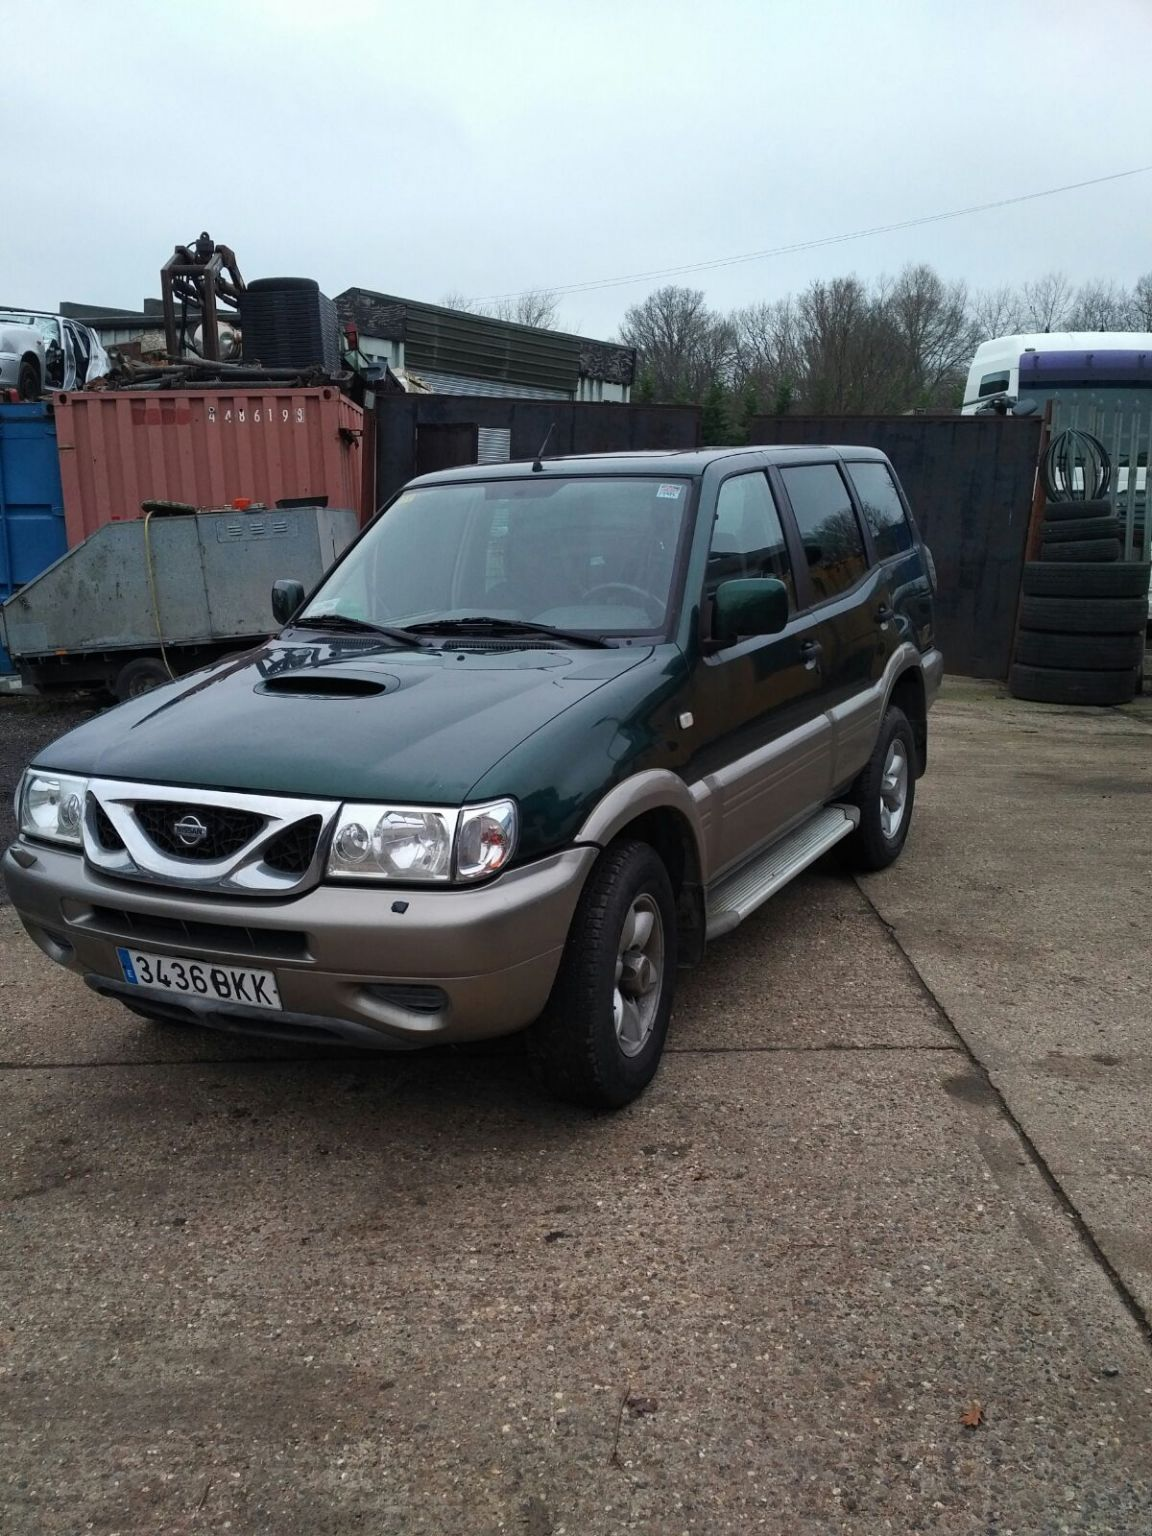 Left hand drive Nissan Terrano TD27 4X4 7 seater.